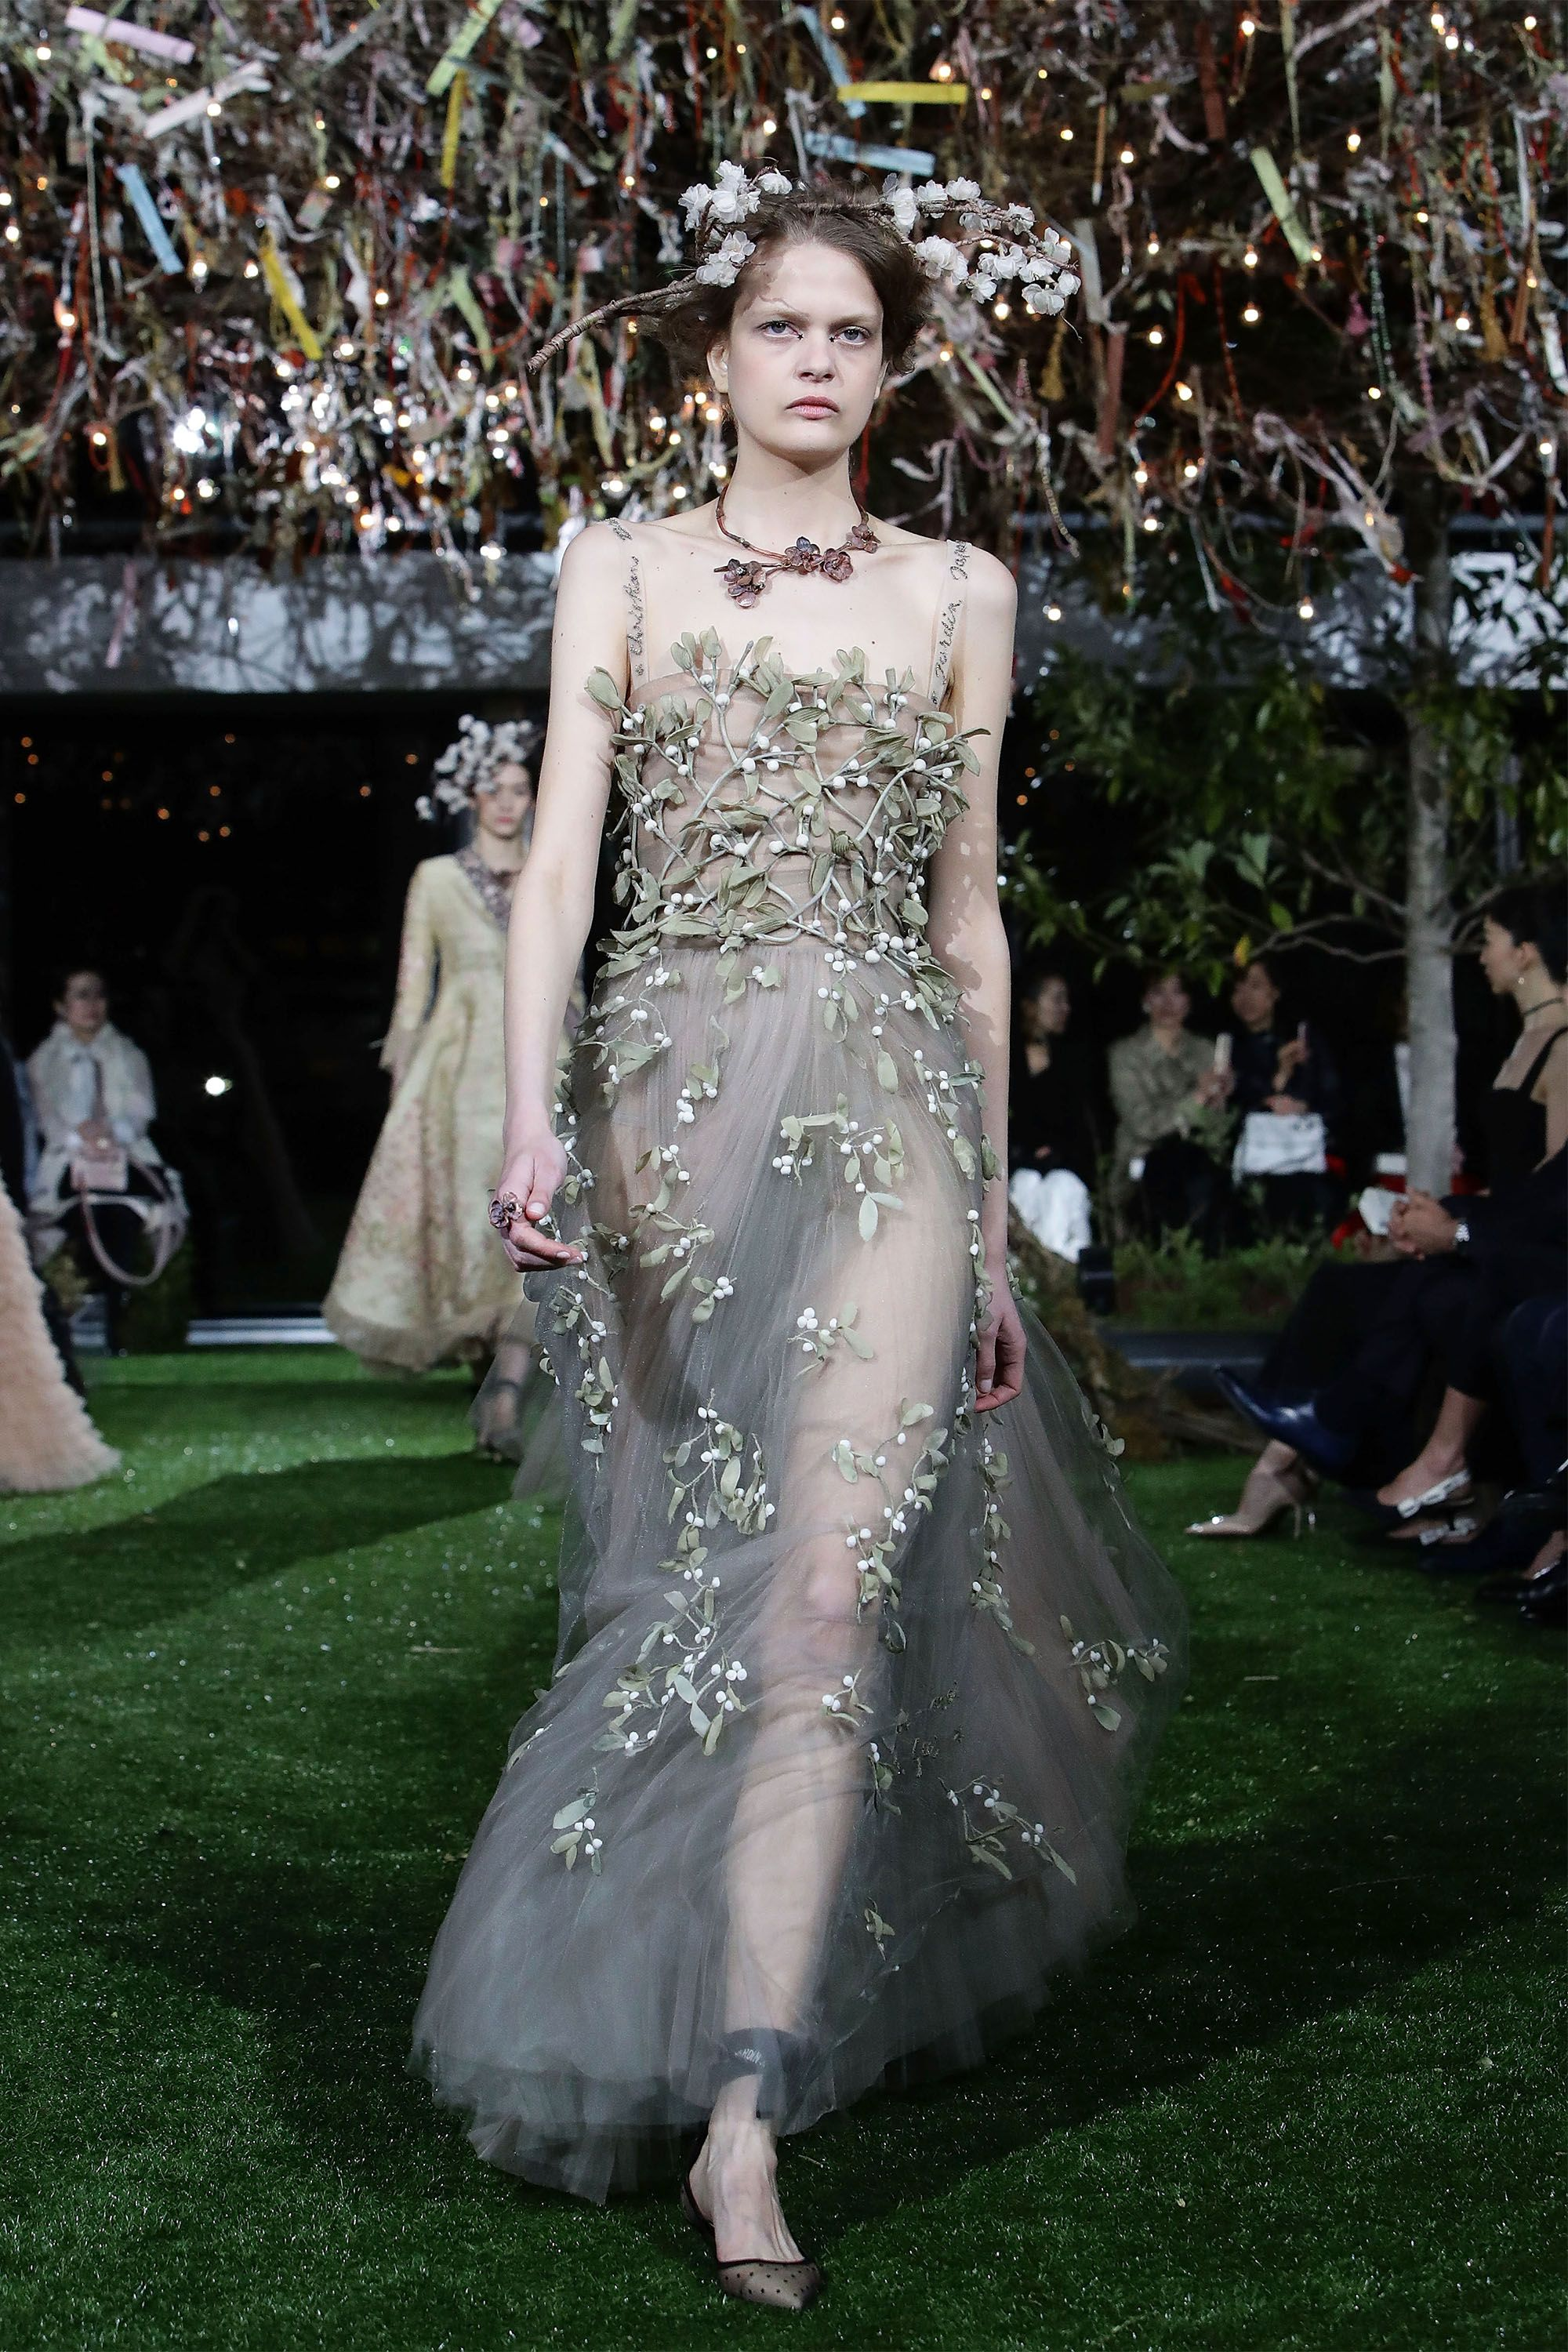 Populaire Dior Haute Couture Cherry Blossom Gowns in Tokyo, Japan - Dior  ZY86